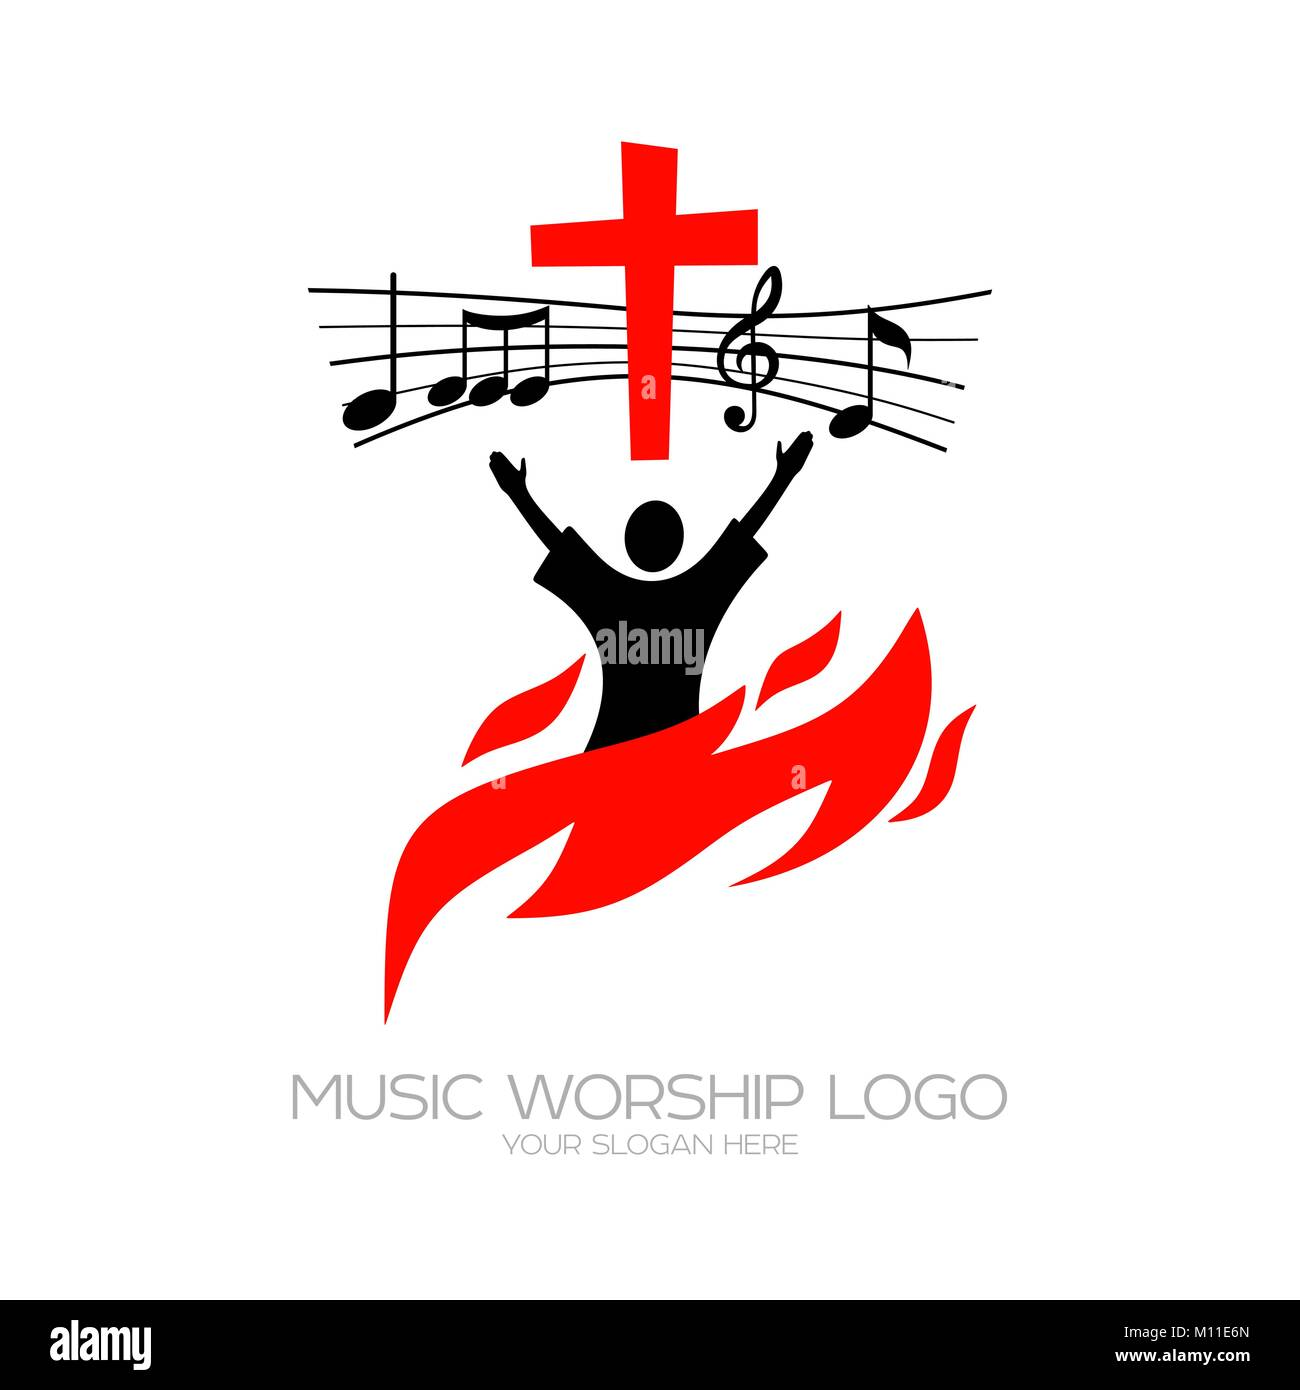 Music logo. Christian symbols. The believer worships Jesus Christ, sings the glory to God - Stock Vector